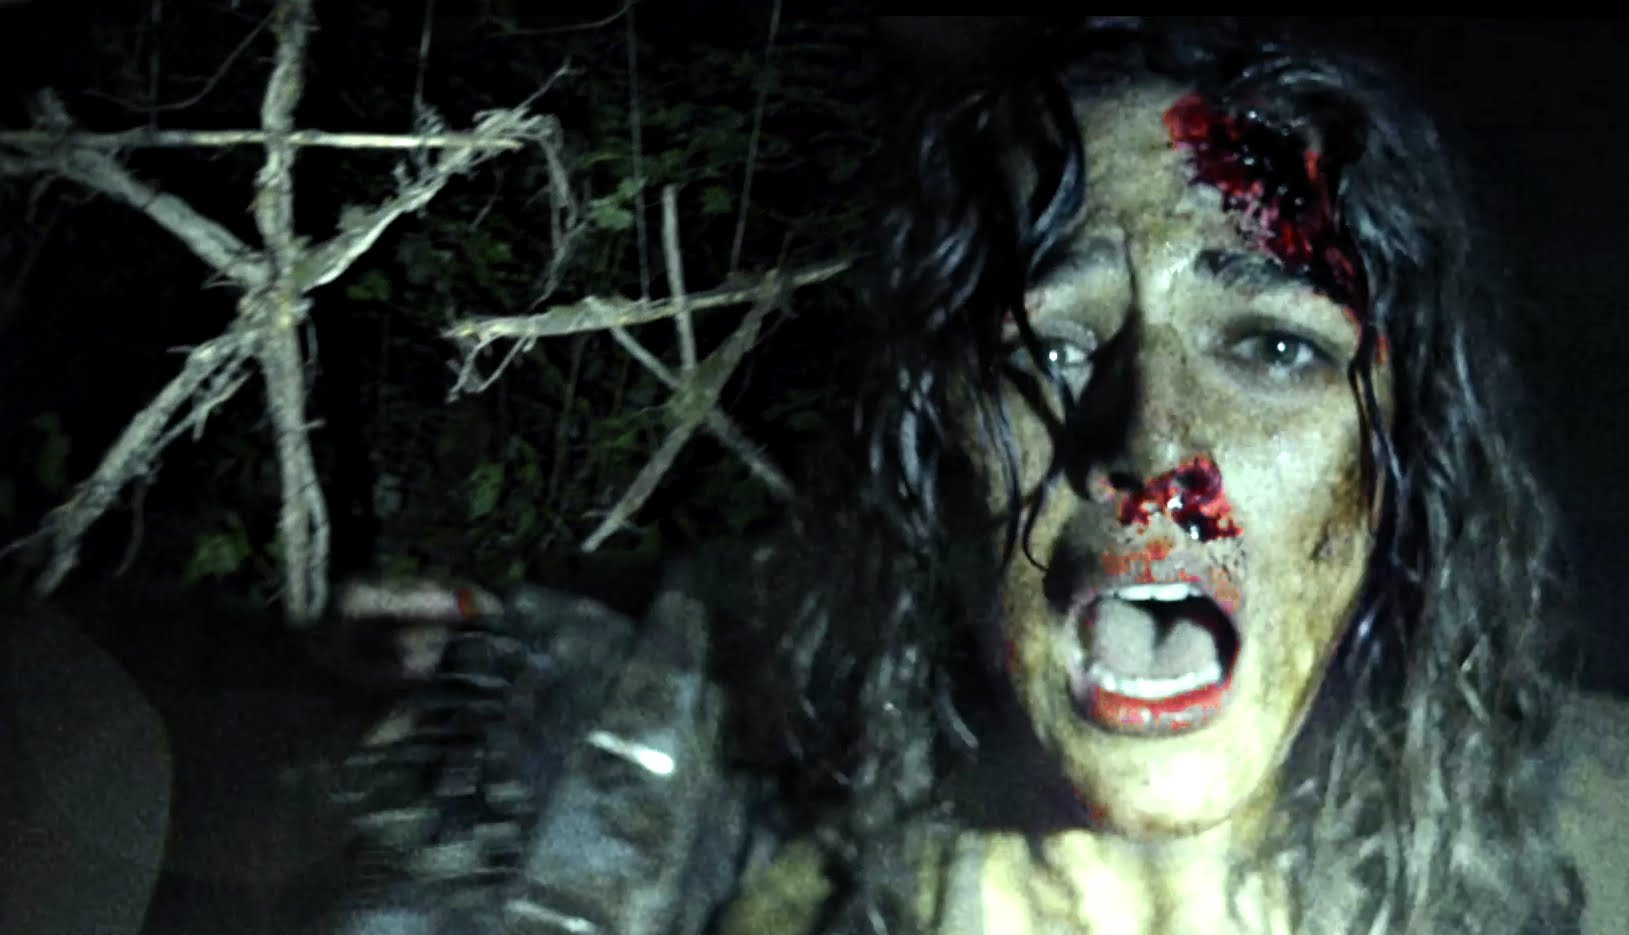 Wingard and Barrett's Blair Witch offers scares but plays it safe